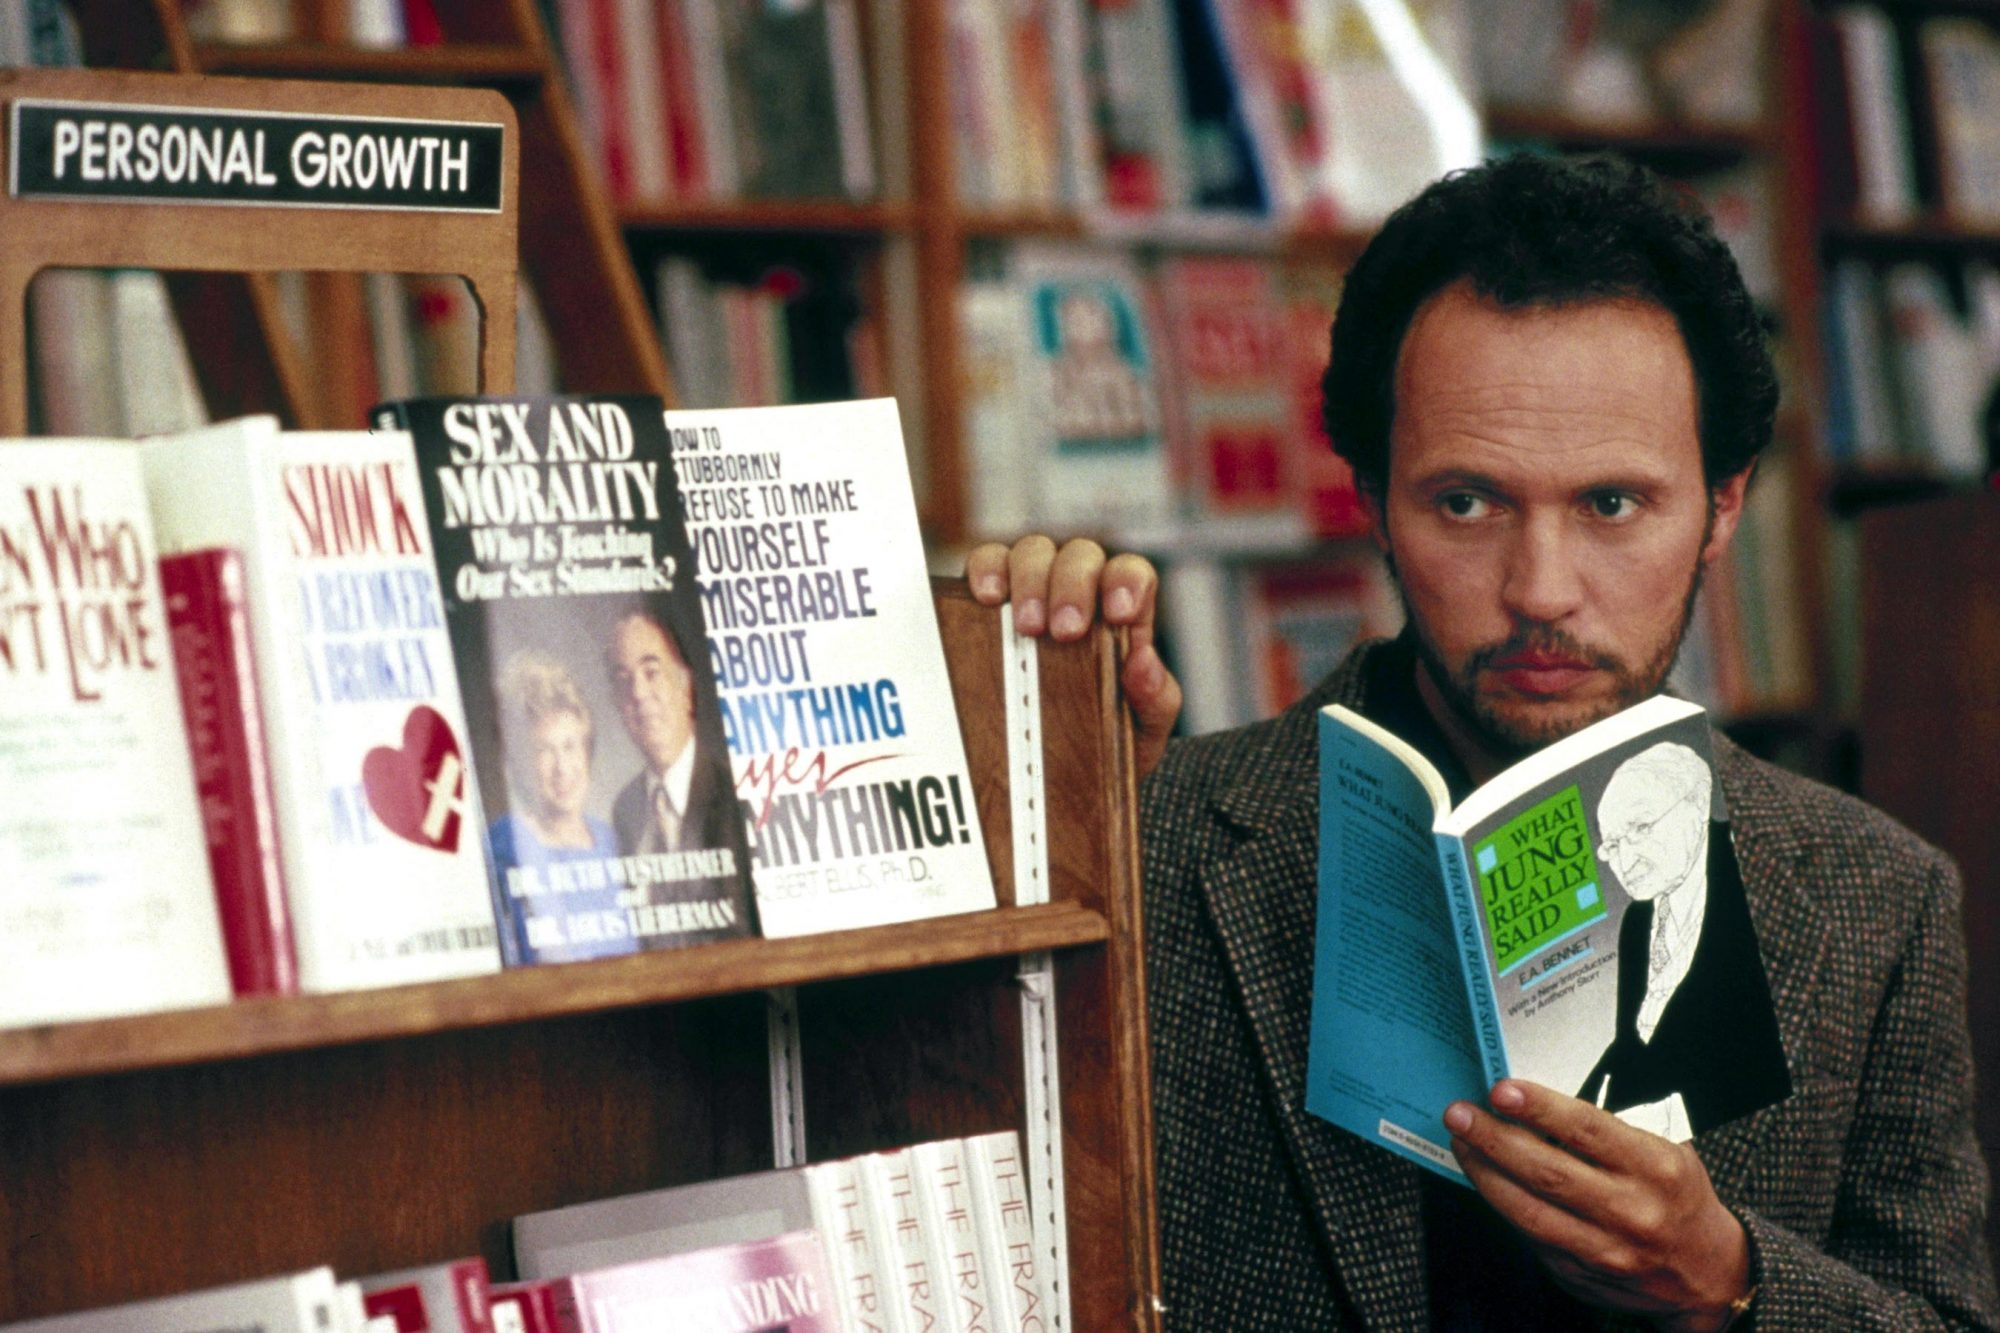 WHEN HARRY MET SALLY..., Billy Crystal, 1989, (c) Columbia/courtesy Everett Collection